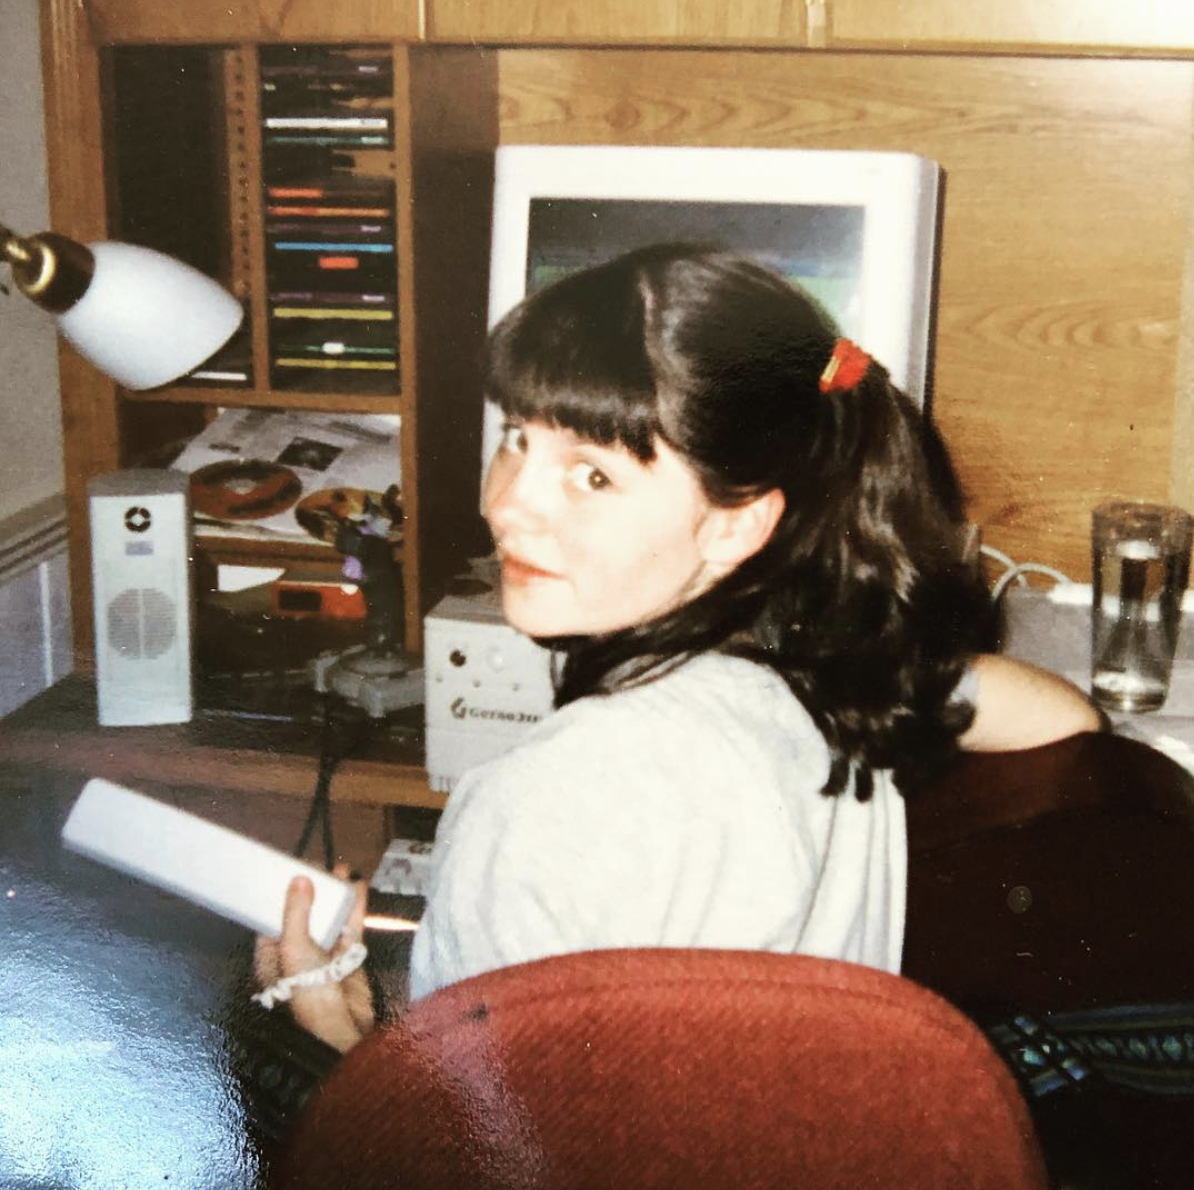 We regret that we cannot be reached by AIM buddy chat, but call and leave us your best late 90s/early 00s away message. - Co-host Mary circa 2000 (She apologizes for the bangs)